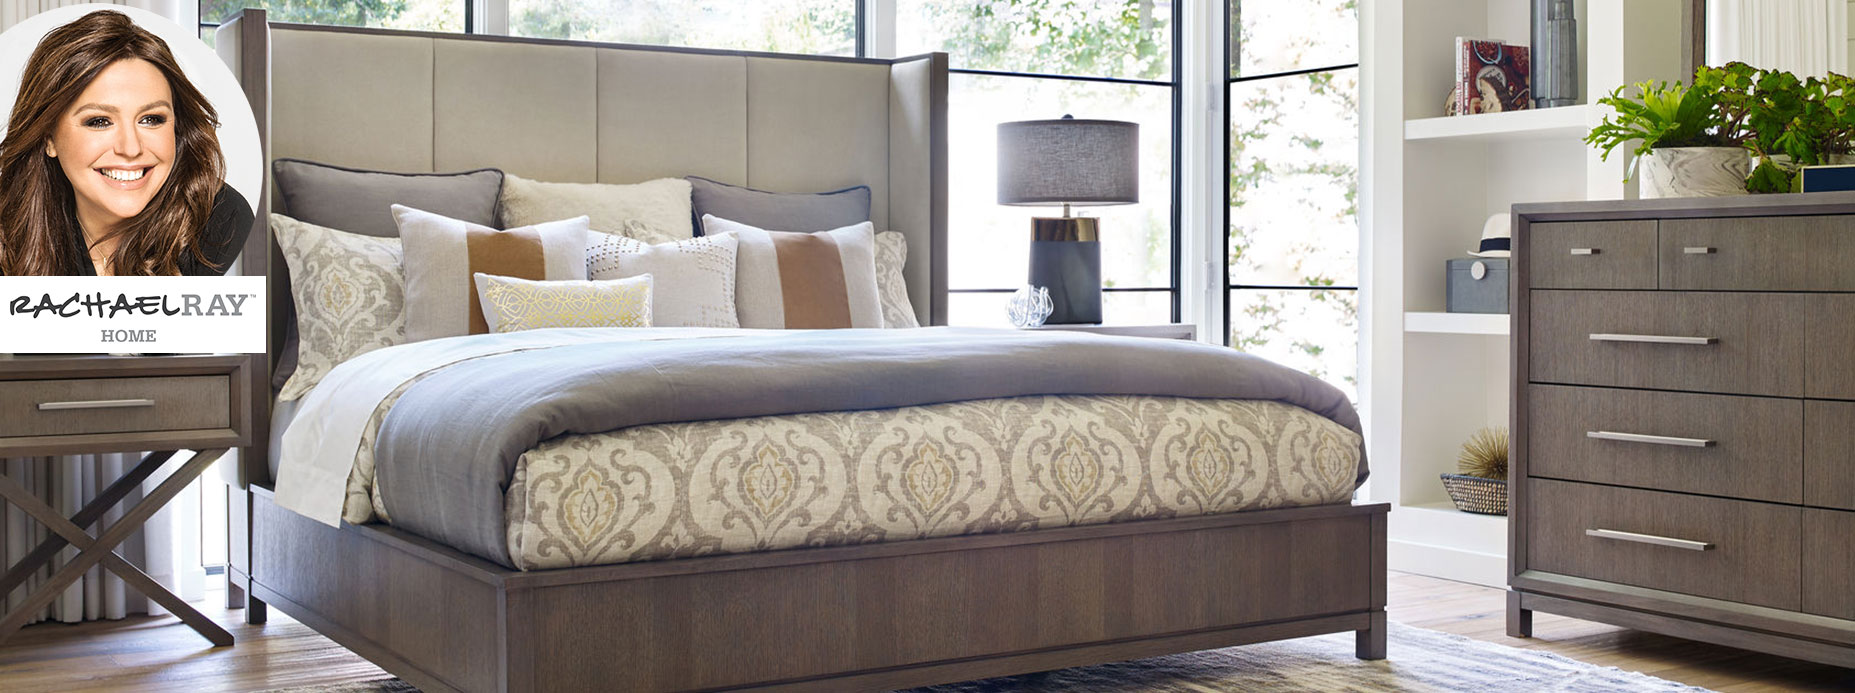 Rachael Ray Home Furniture Discount Store And Showroom In Hickory Nc